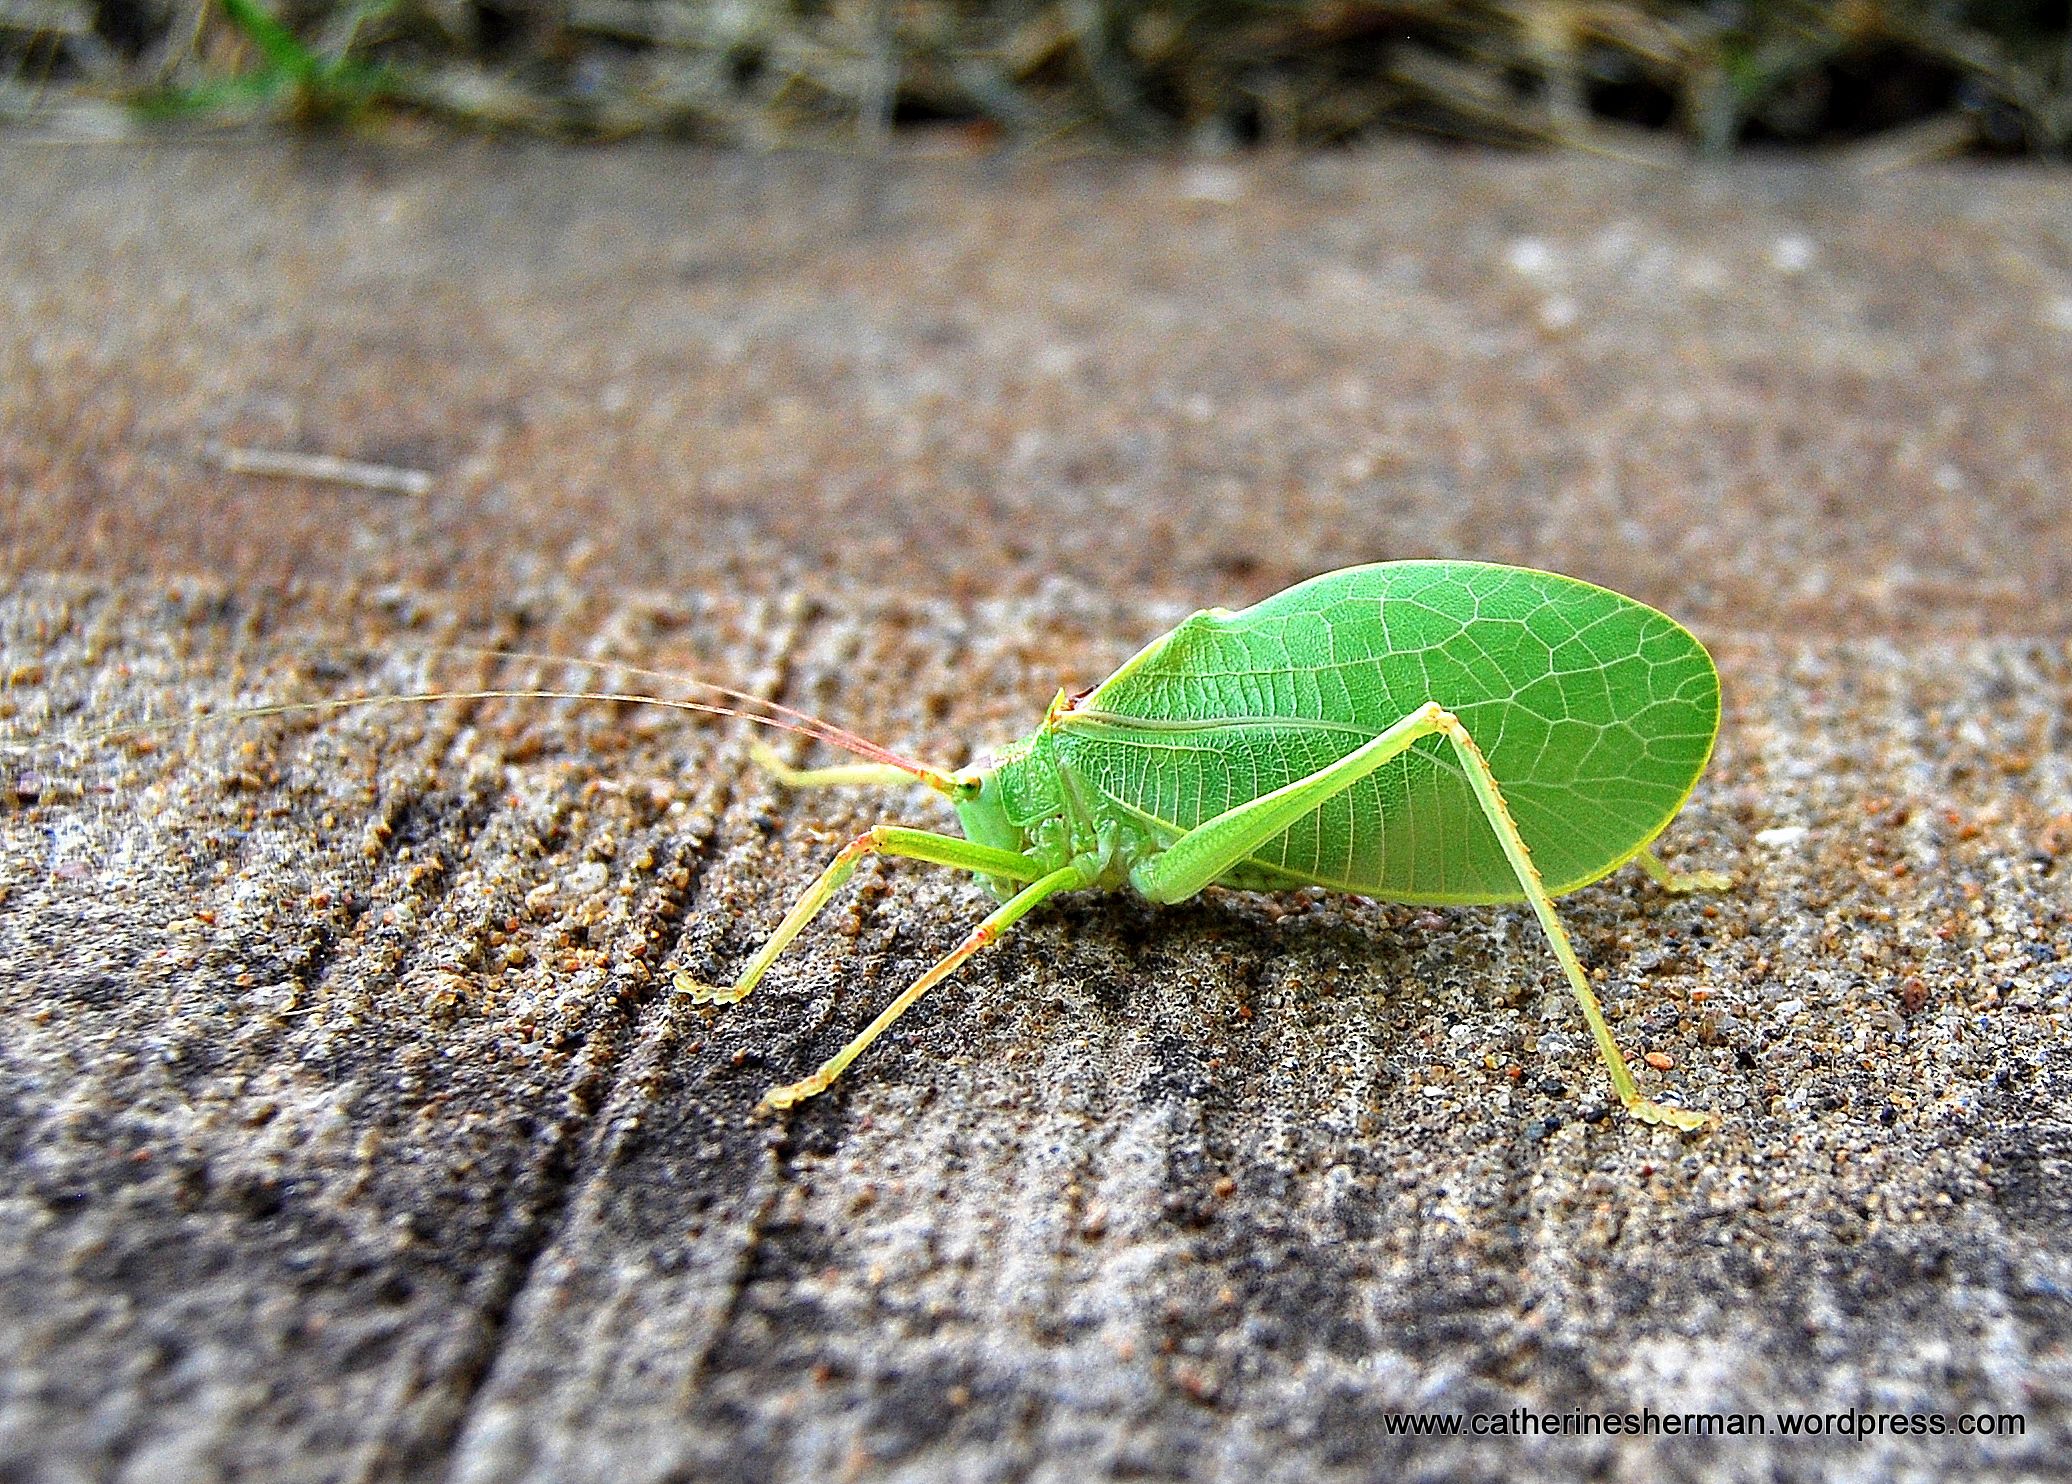 Green Bug With Wings That Look Like Leaves With Their Leaf Shaped